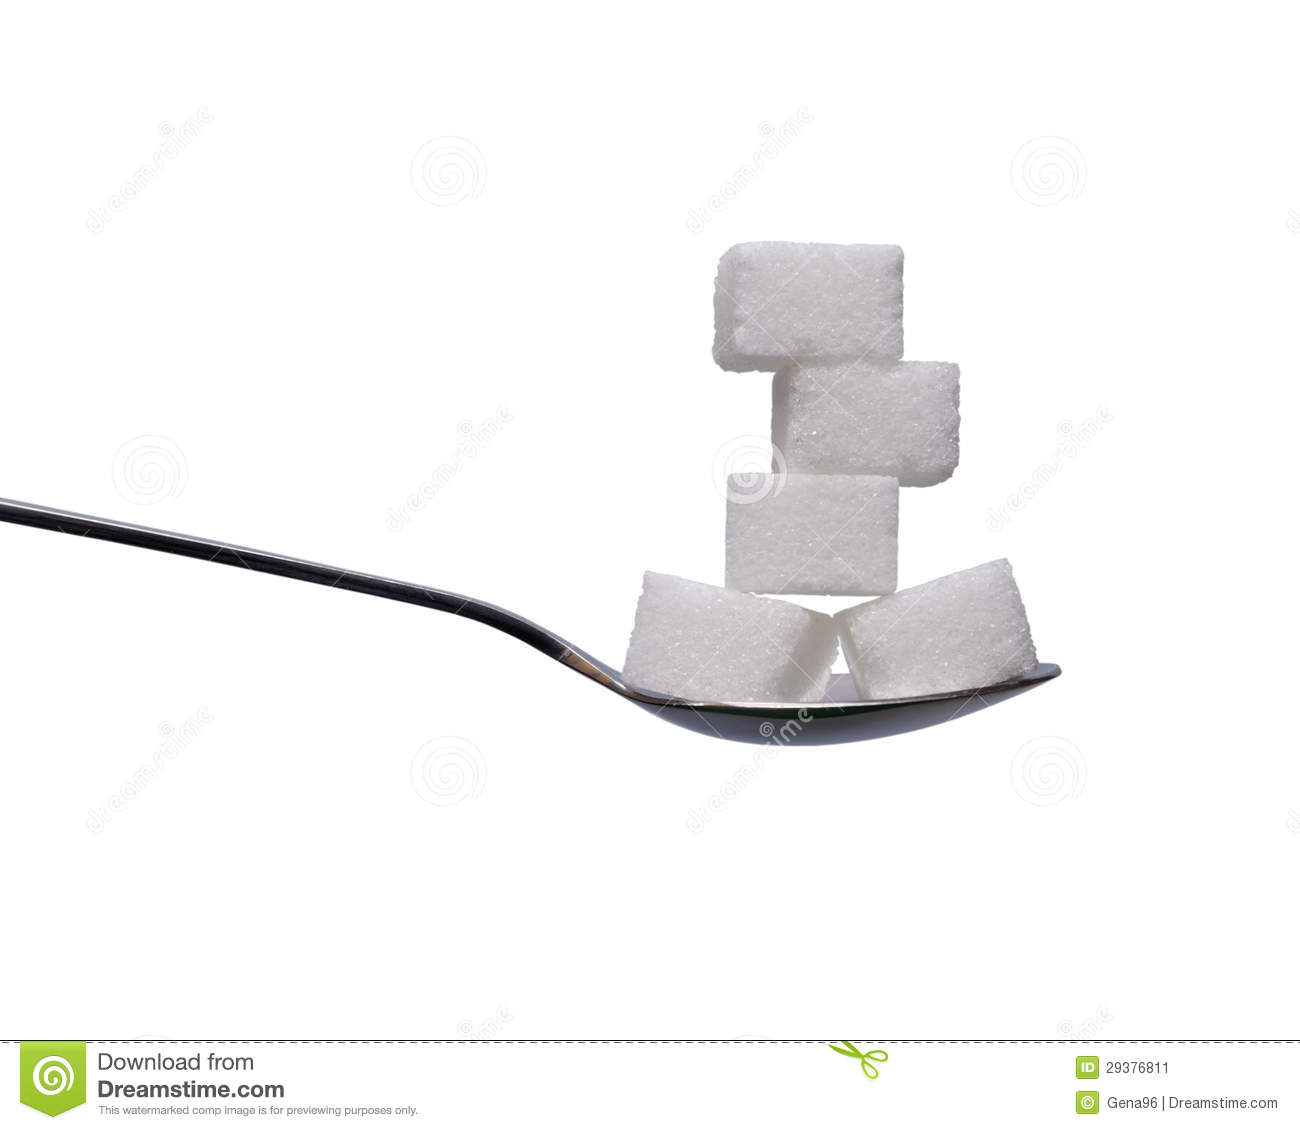 How Many Teaspoons In A Sugar Cube